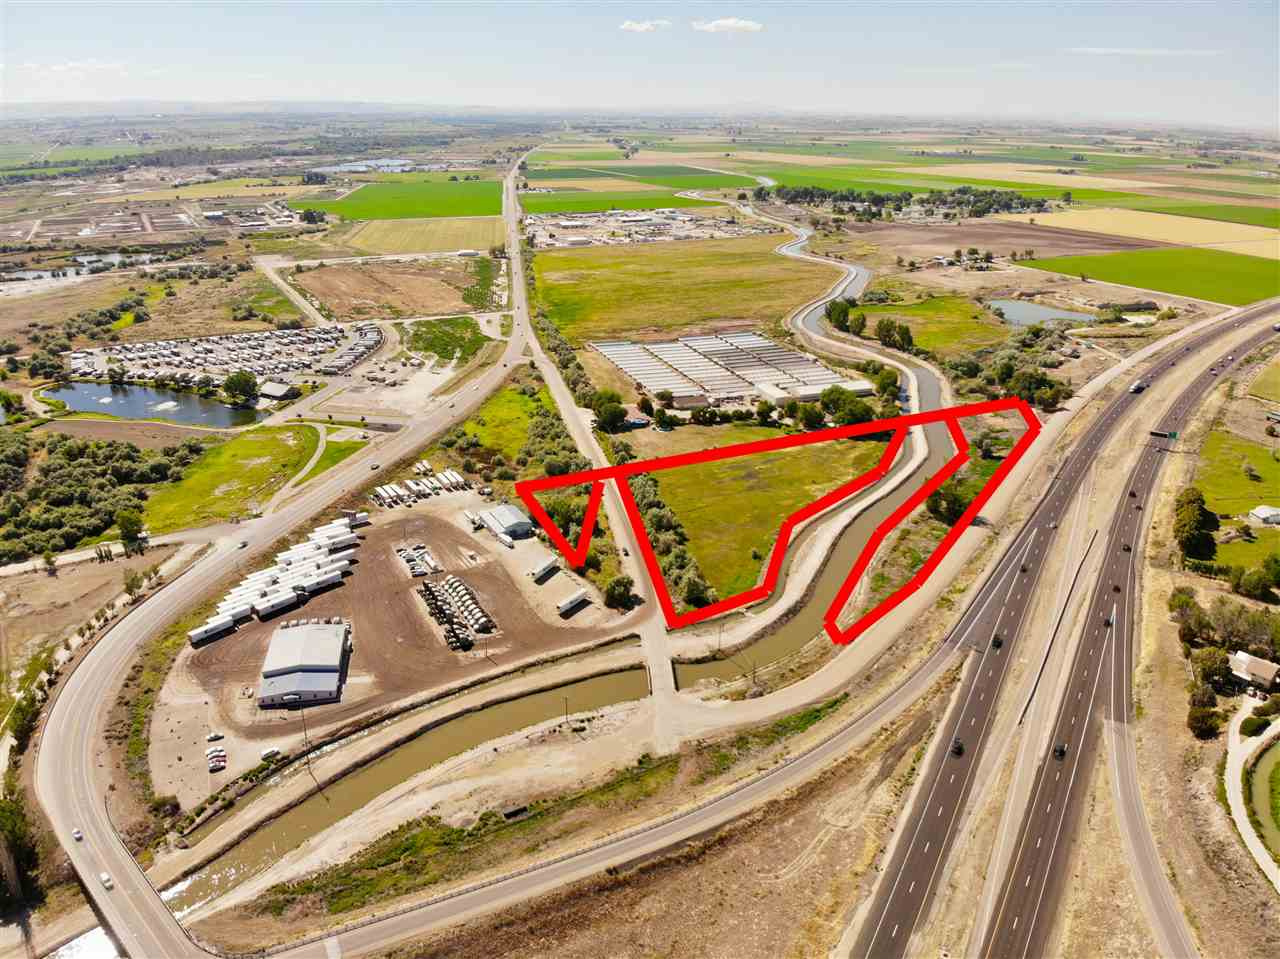 Fantastic opportunity for I-84 freeway frontage as well as Hwy 20-26 access. Located in the City Impact area with possible Commercial or Light Industrial rezone. Approx a total of 91.18+/- acres in this immediate area available to create larger or even possibly smaller parcels for your needs. Currently zoned Ag w/ 1 home (sold as-is). City sewer and water in the immediate area. Call for details.